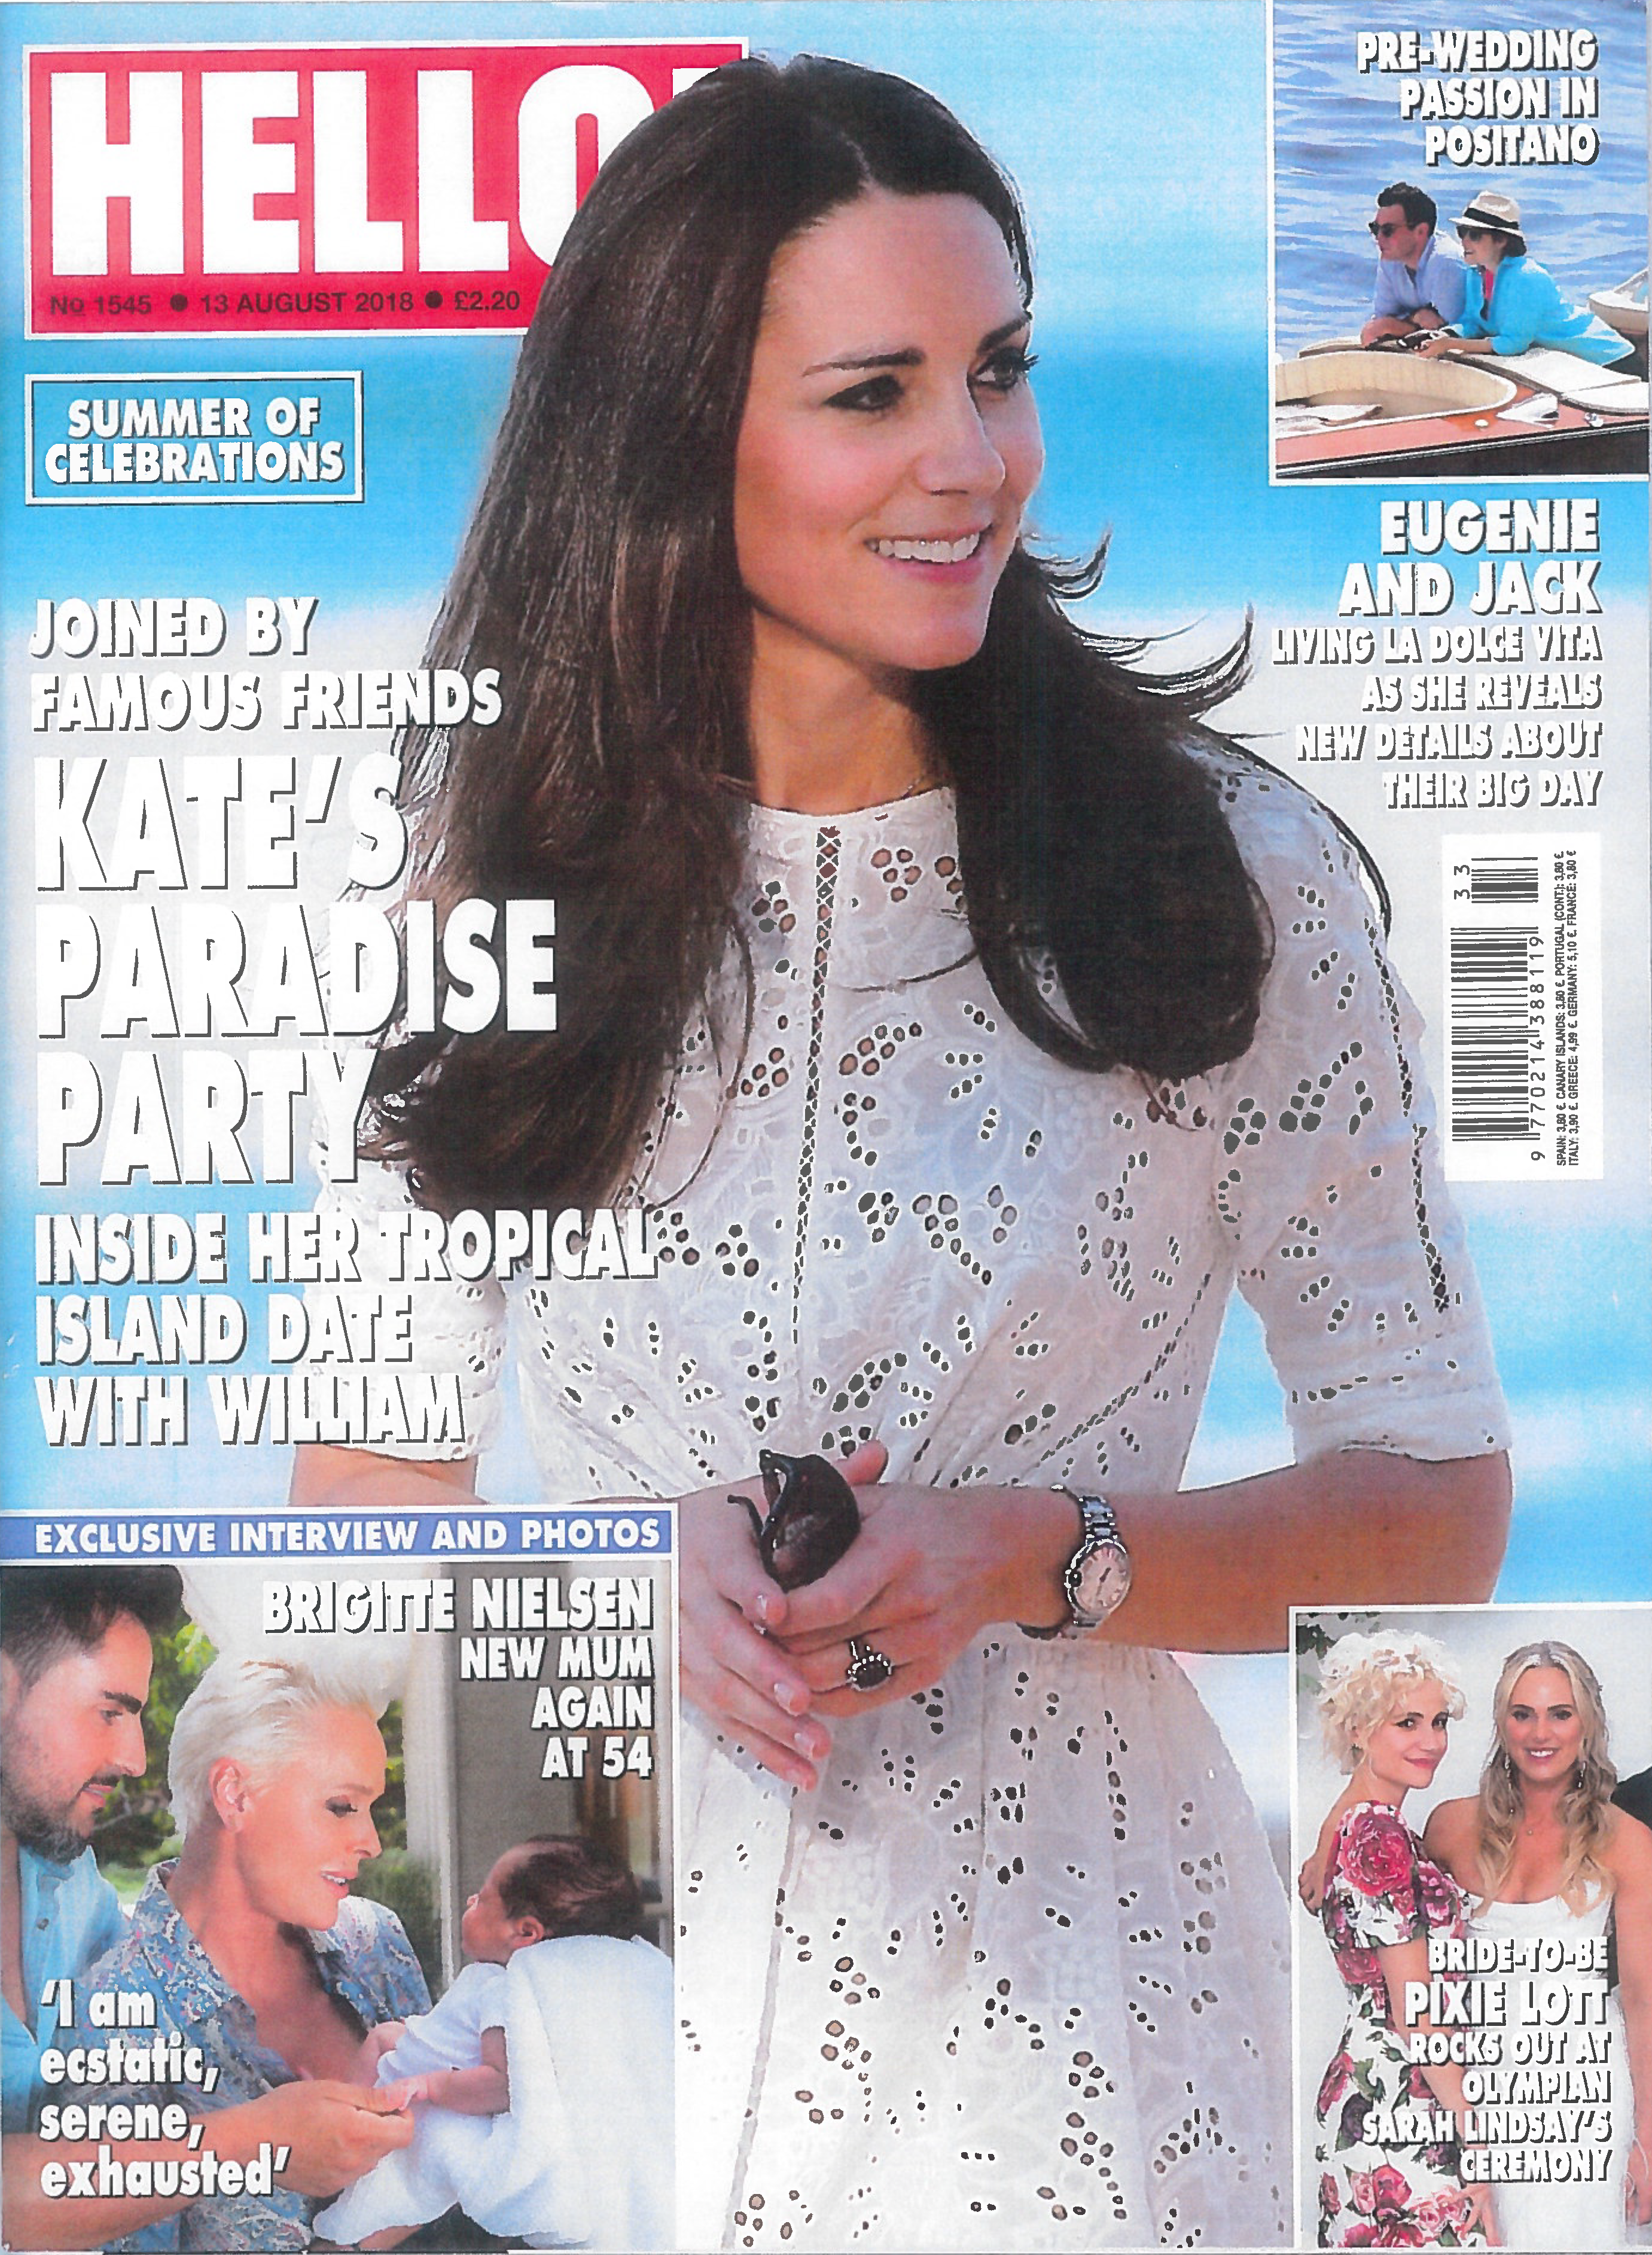 Snapdragon plans Sarah Lindsay Rich Phillipps Wedding as seen in Hello Magazine Interview with the bride